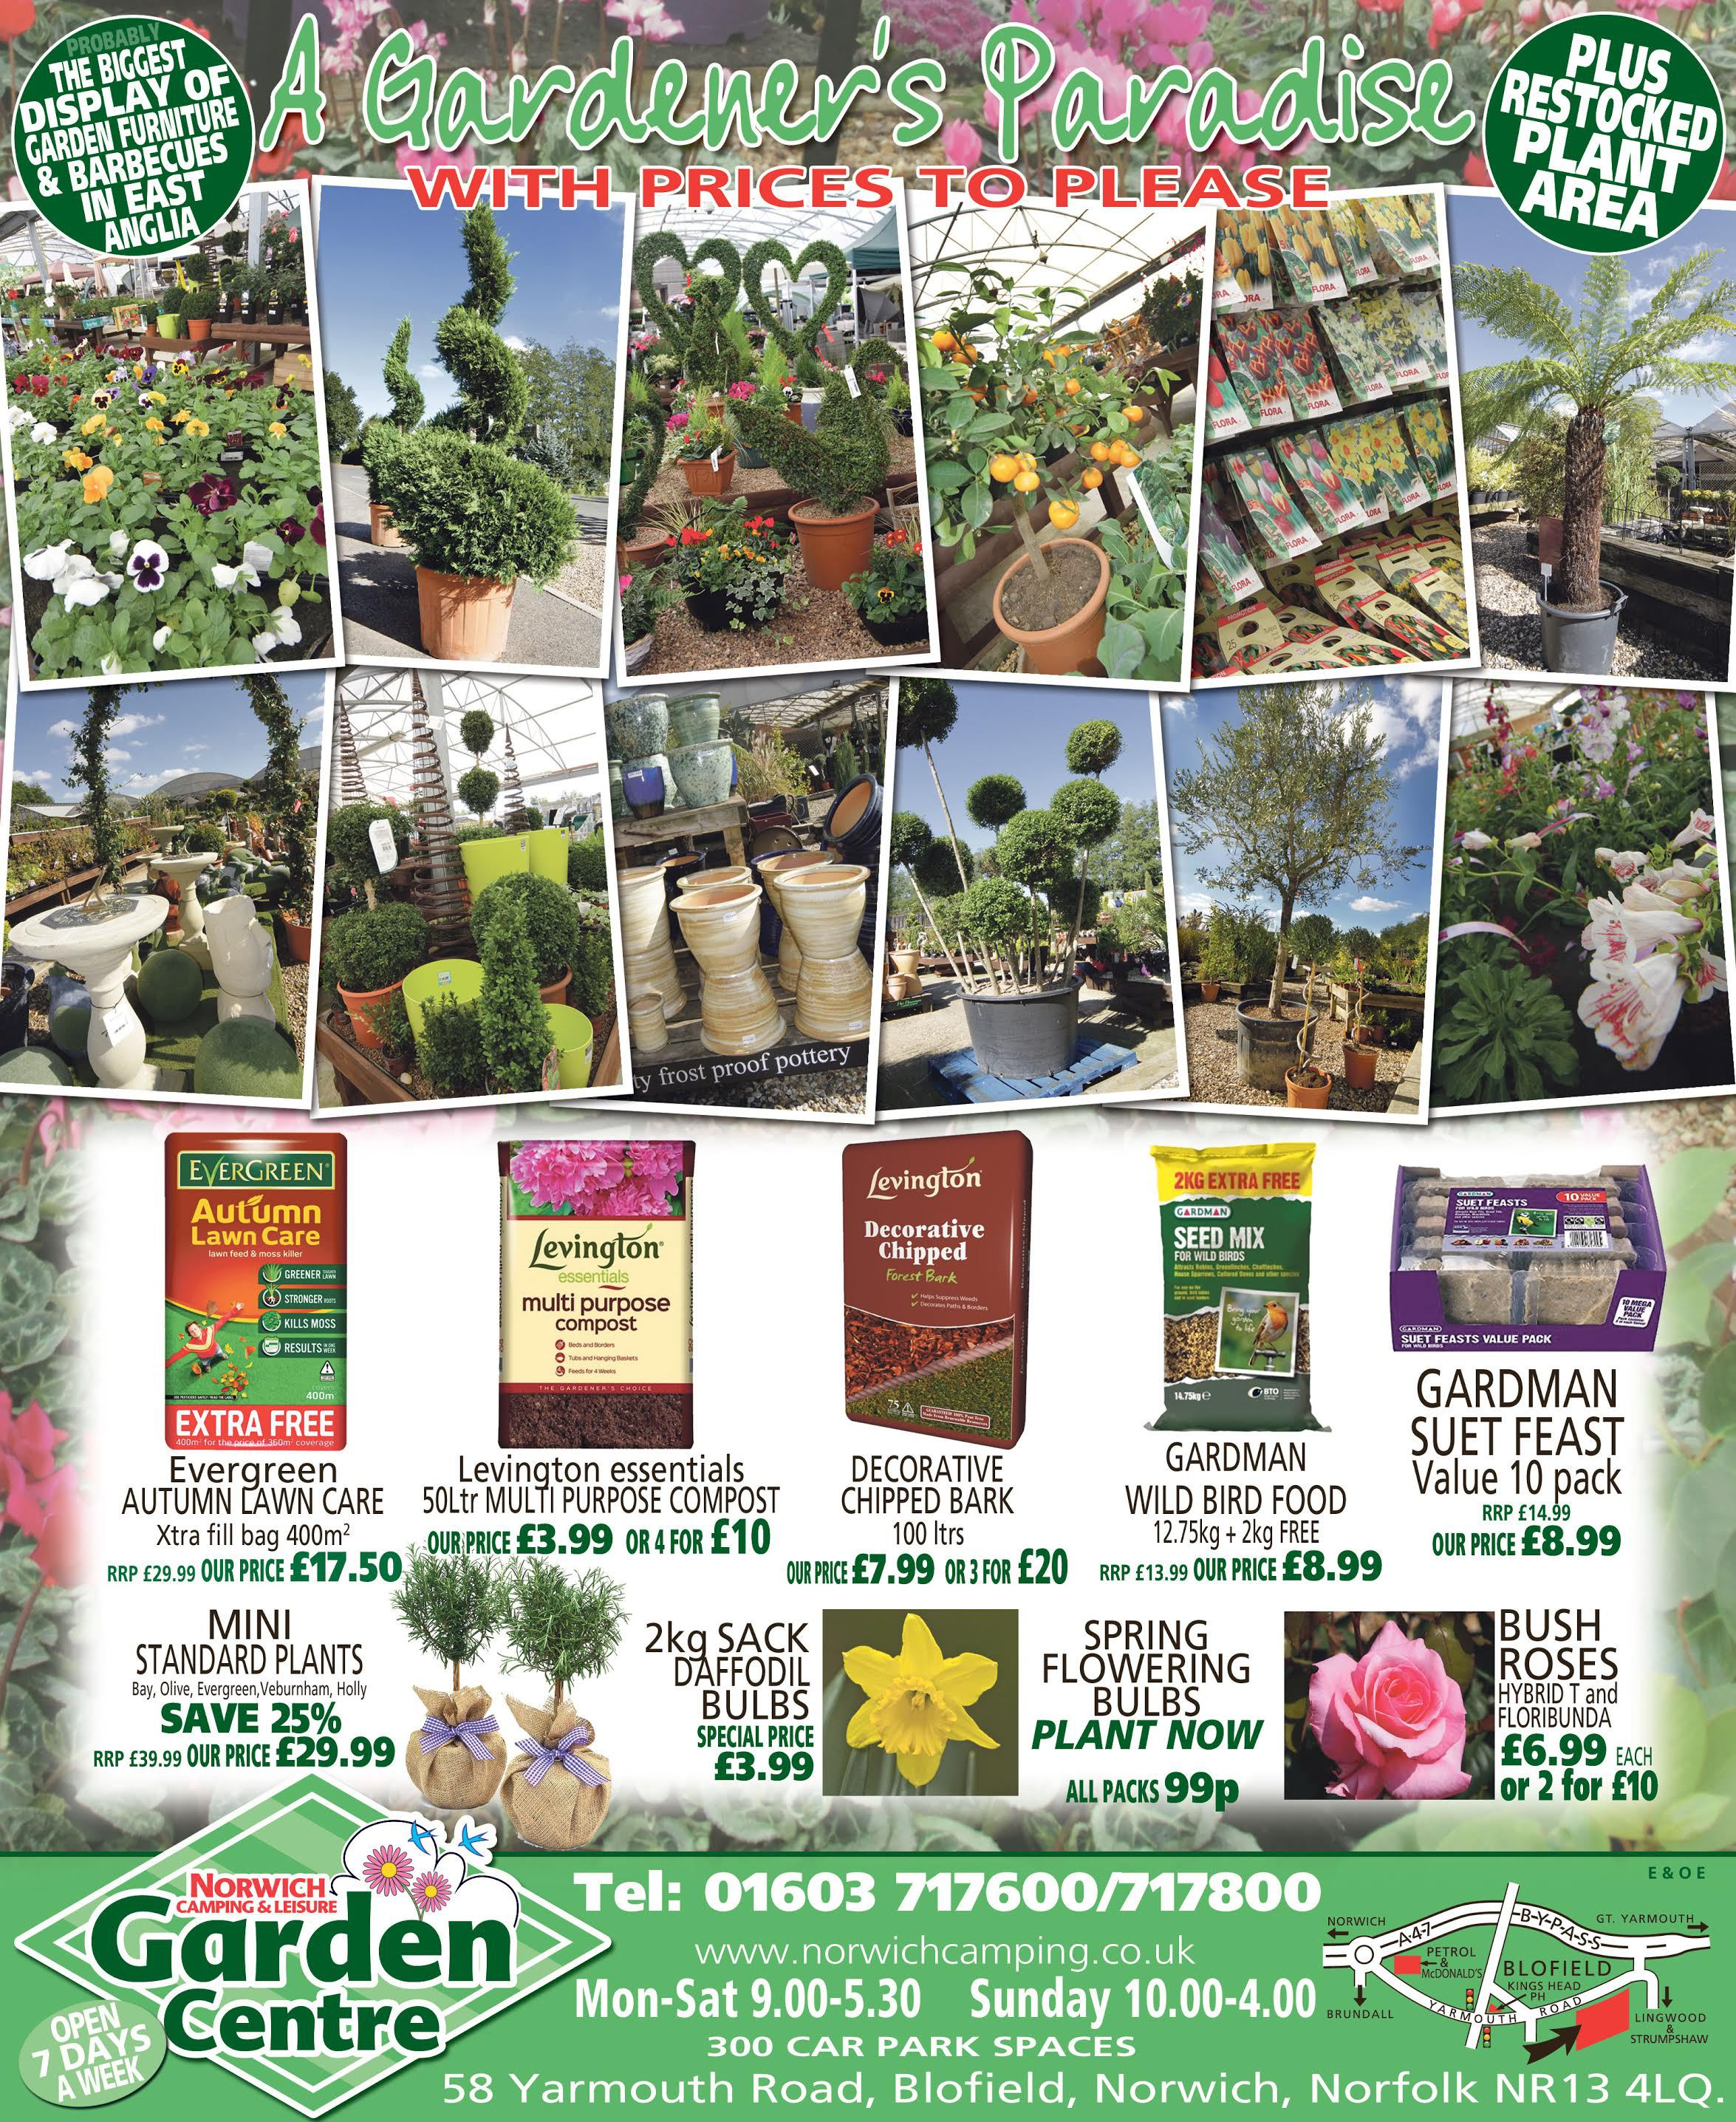 Norwich Camping & Leisure - Garden Centre OFFERS